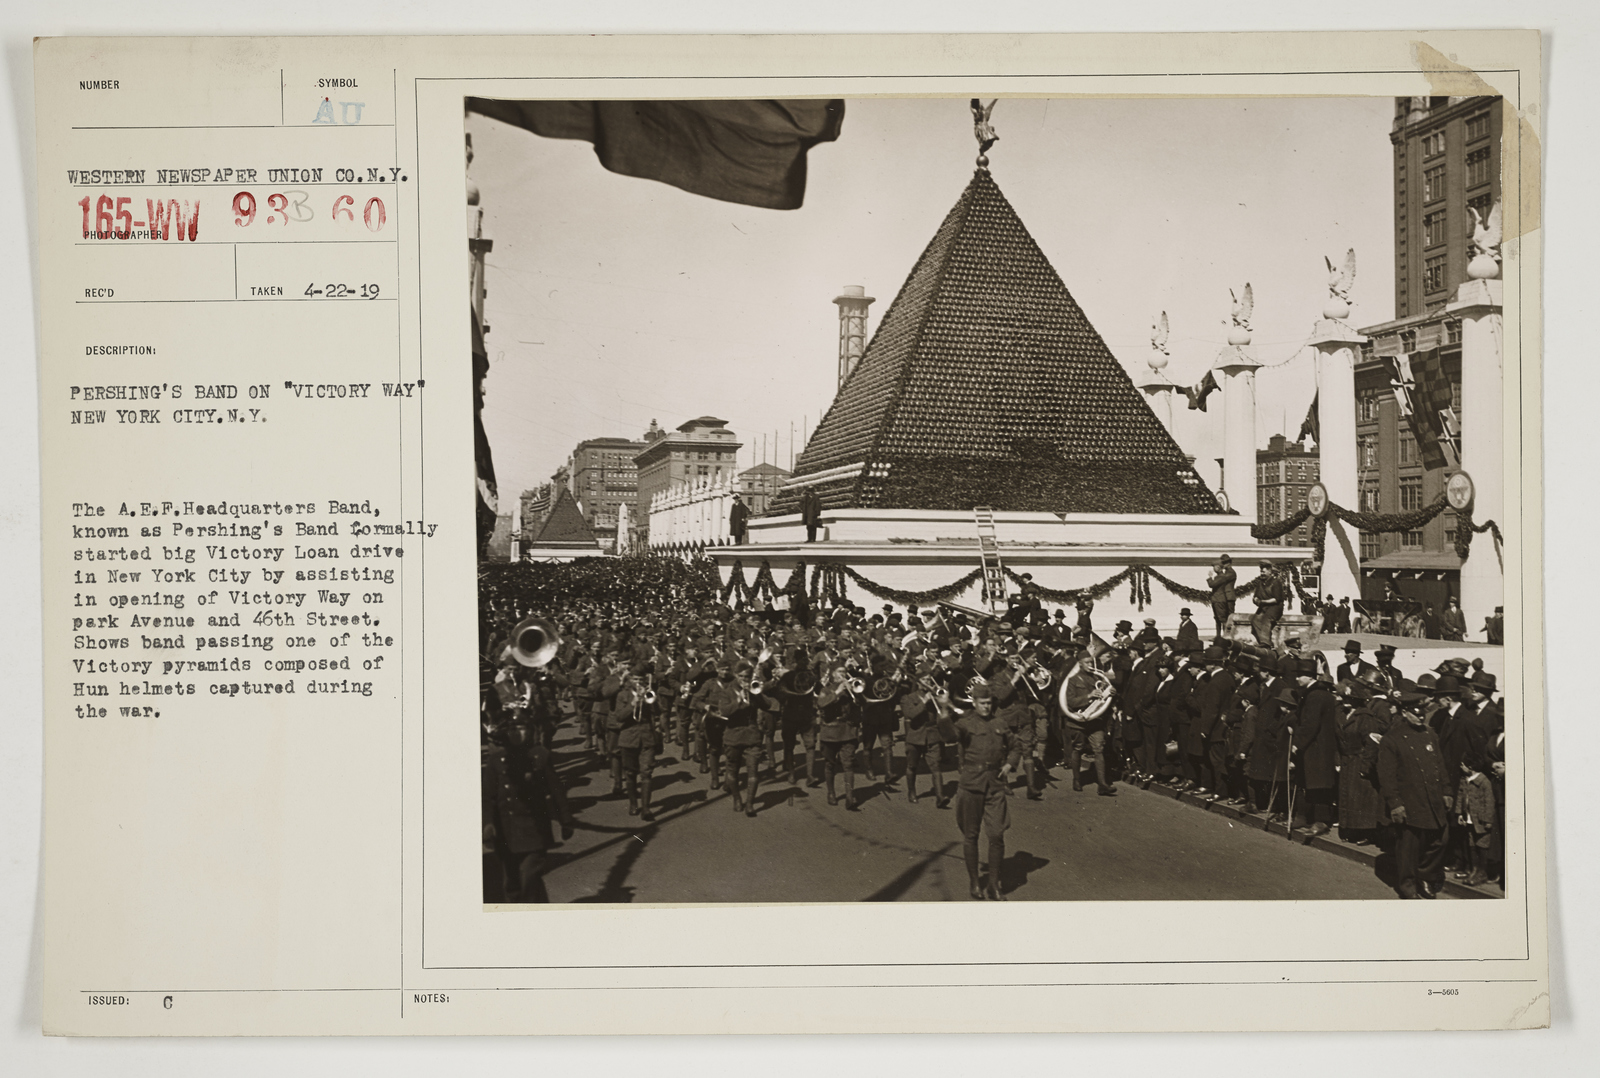 """Ceremonies - Salutes and Parades - New York - Pershing's band on """"Victory Way"""" New York City, New York"""